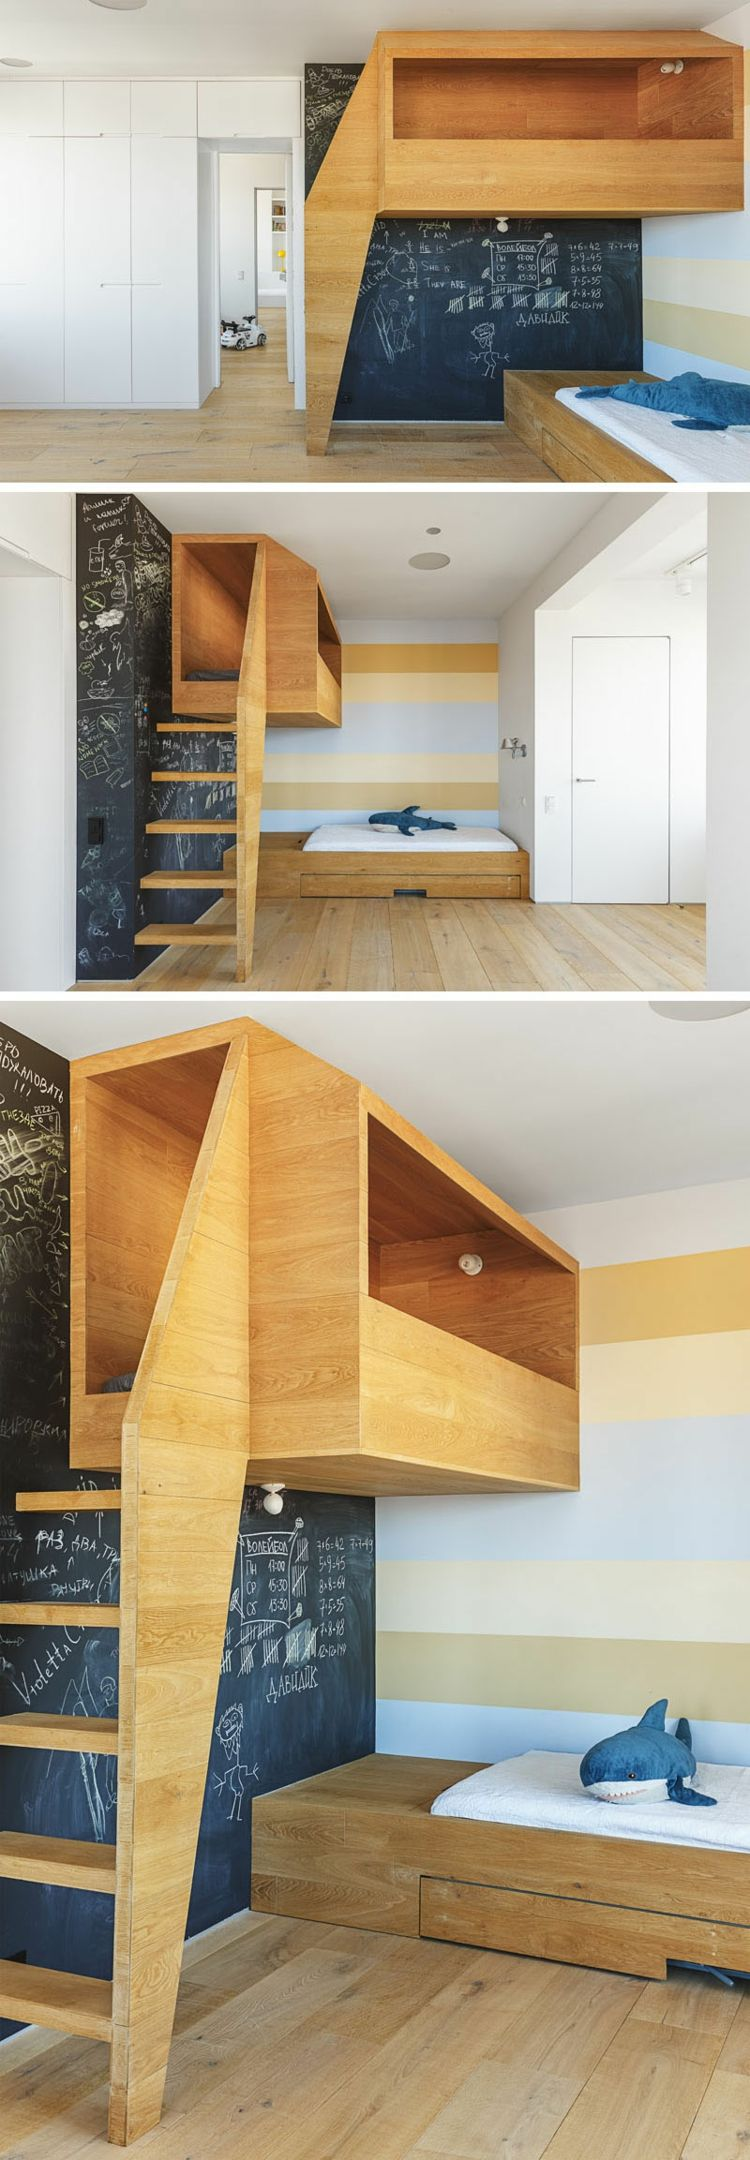 spielhaus aus holz naturmaterial bett kinderzimmer pl schtier hai wand beschriftet t r treppe 2. Black Bedroom Furniture Sets. Home Design Ideas